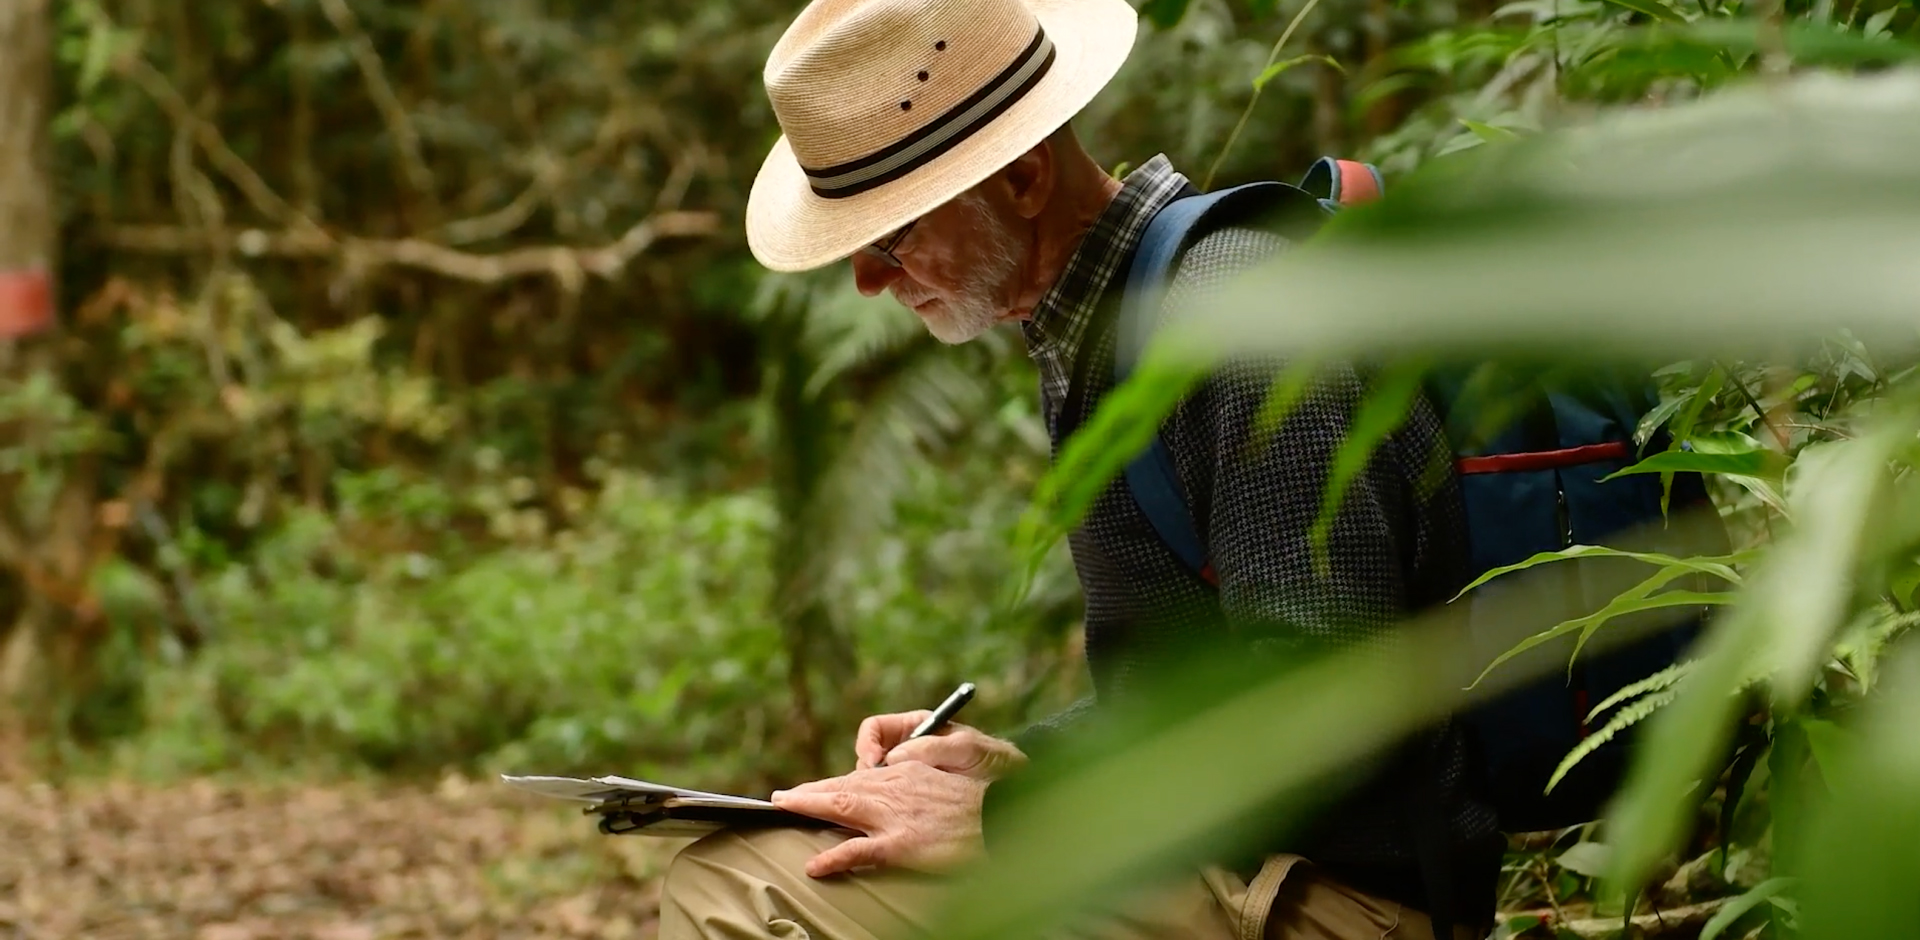 Peter Chesson is seen writing notes while in conducting research in the jungle